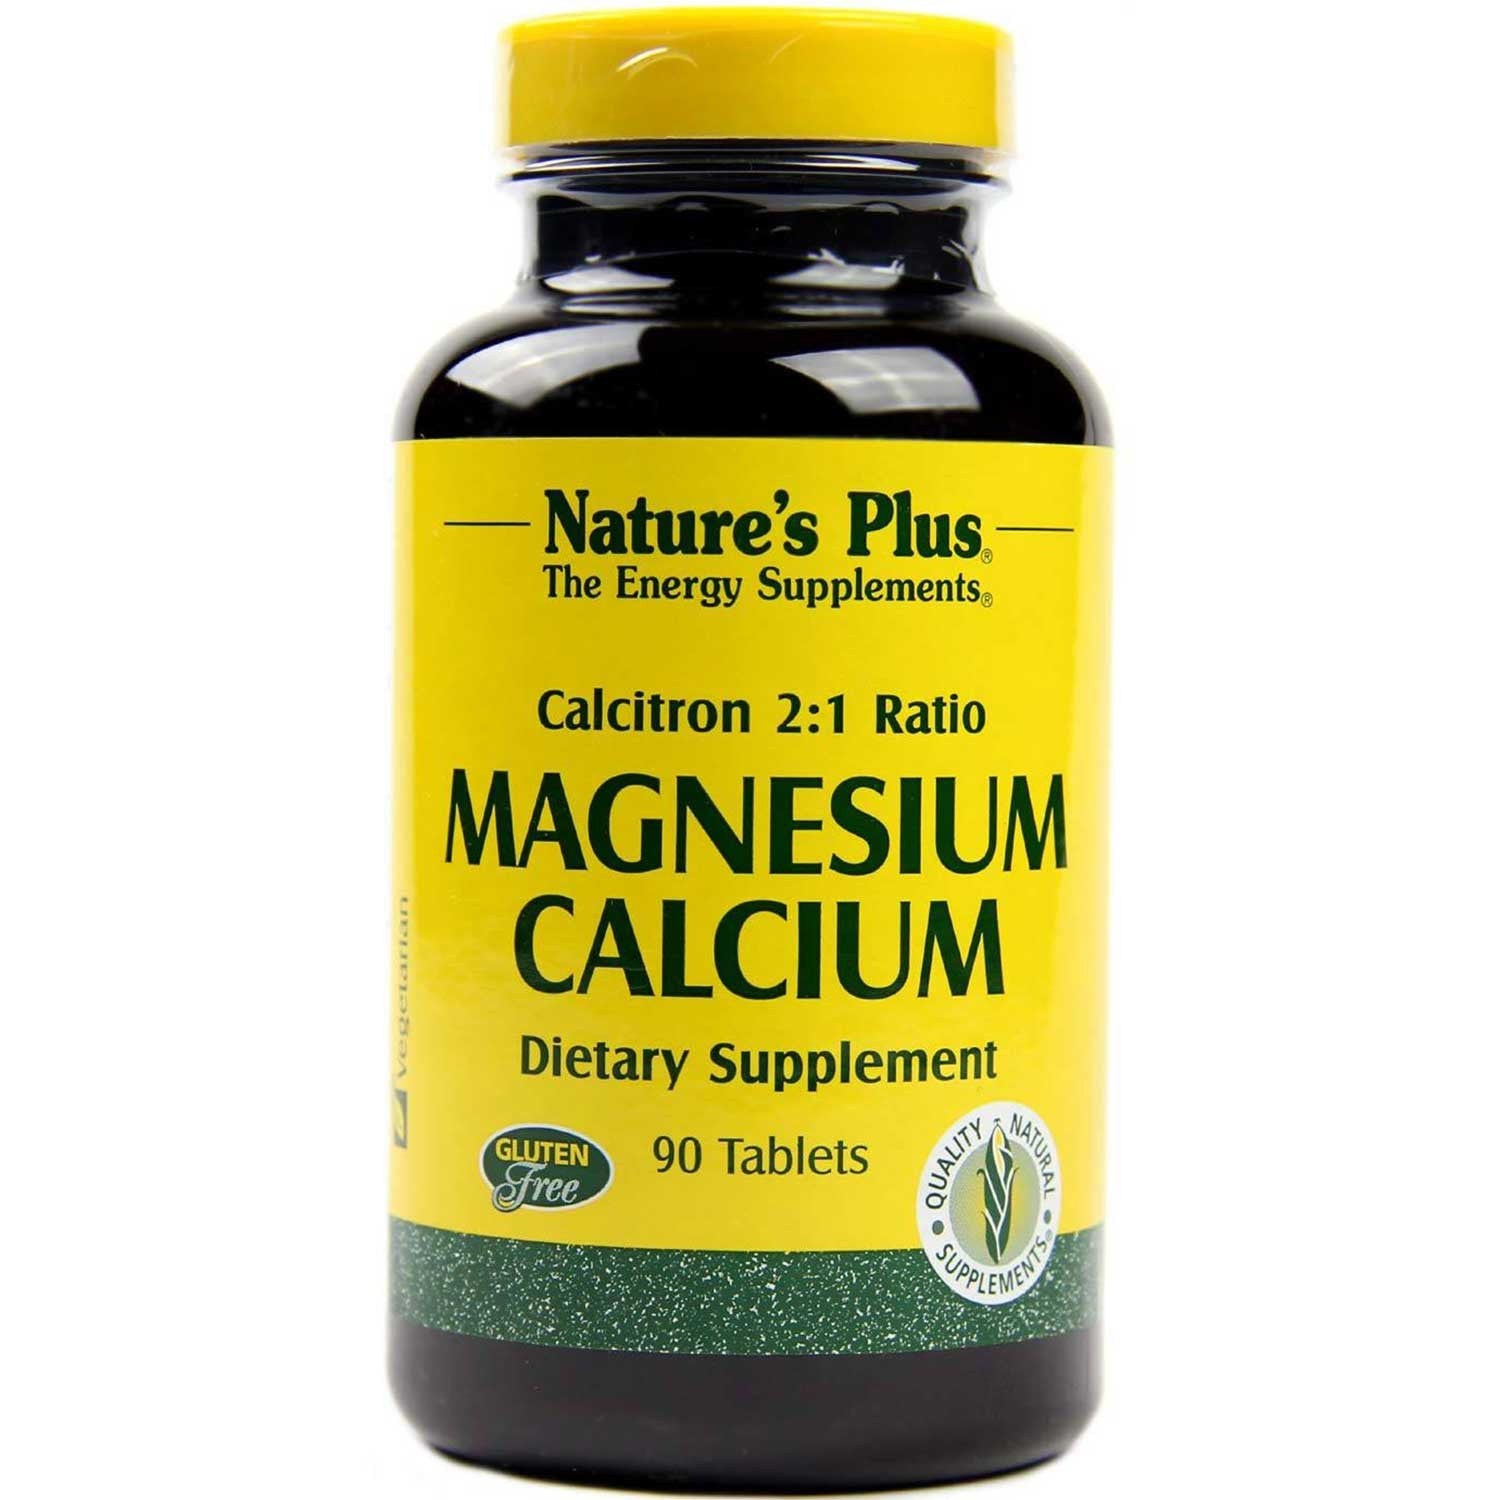 Natures Plus Calcitron 21 Ration Magnesium Calcium 90 Tabs Blackmores Total D3 200 Tablet